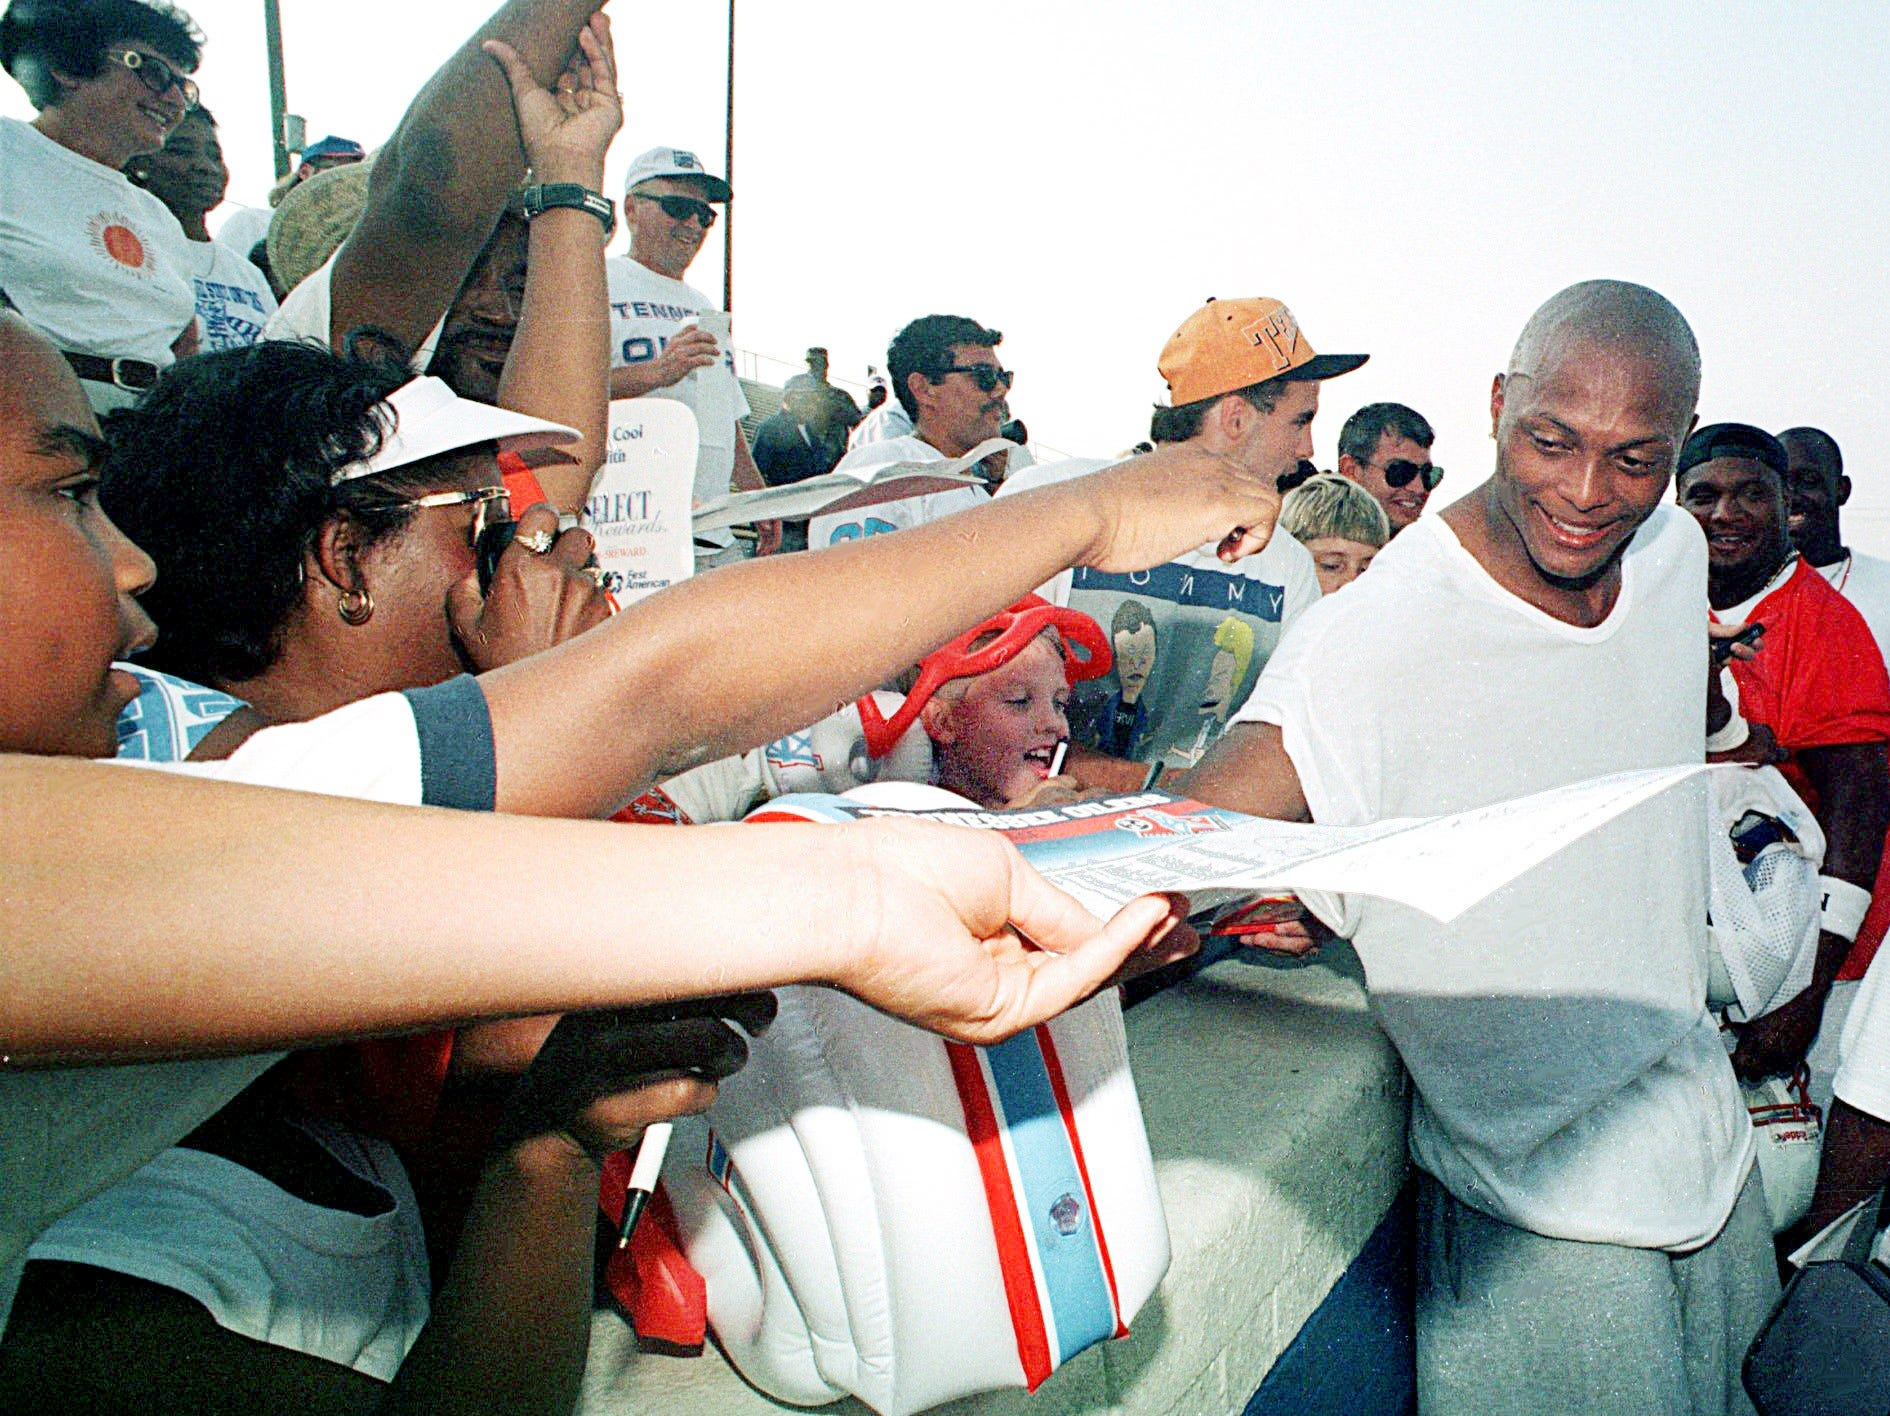 Tennessee Oilers running back Eddie George is mobbed by excited fans as he signed autographs following the Oilers first practice in Nashville at Tennessee State University July 19, 1997.